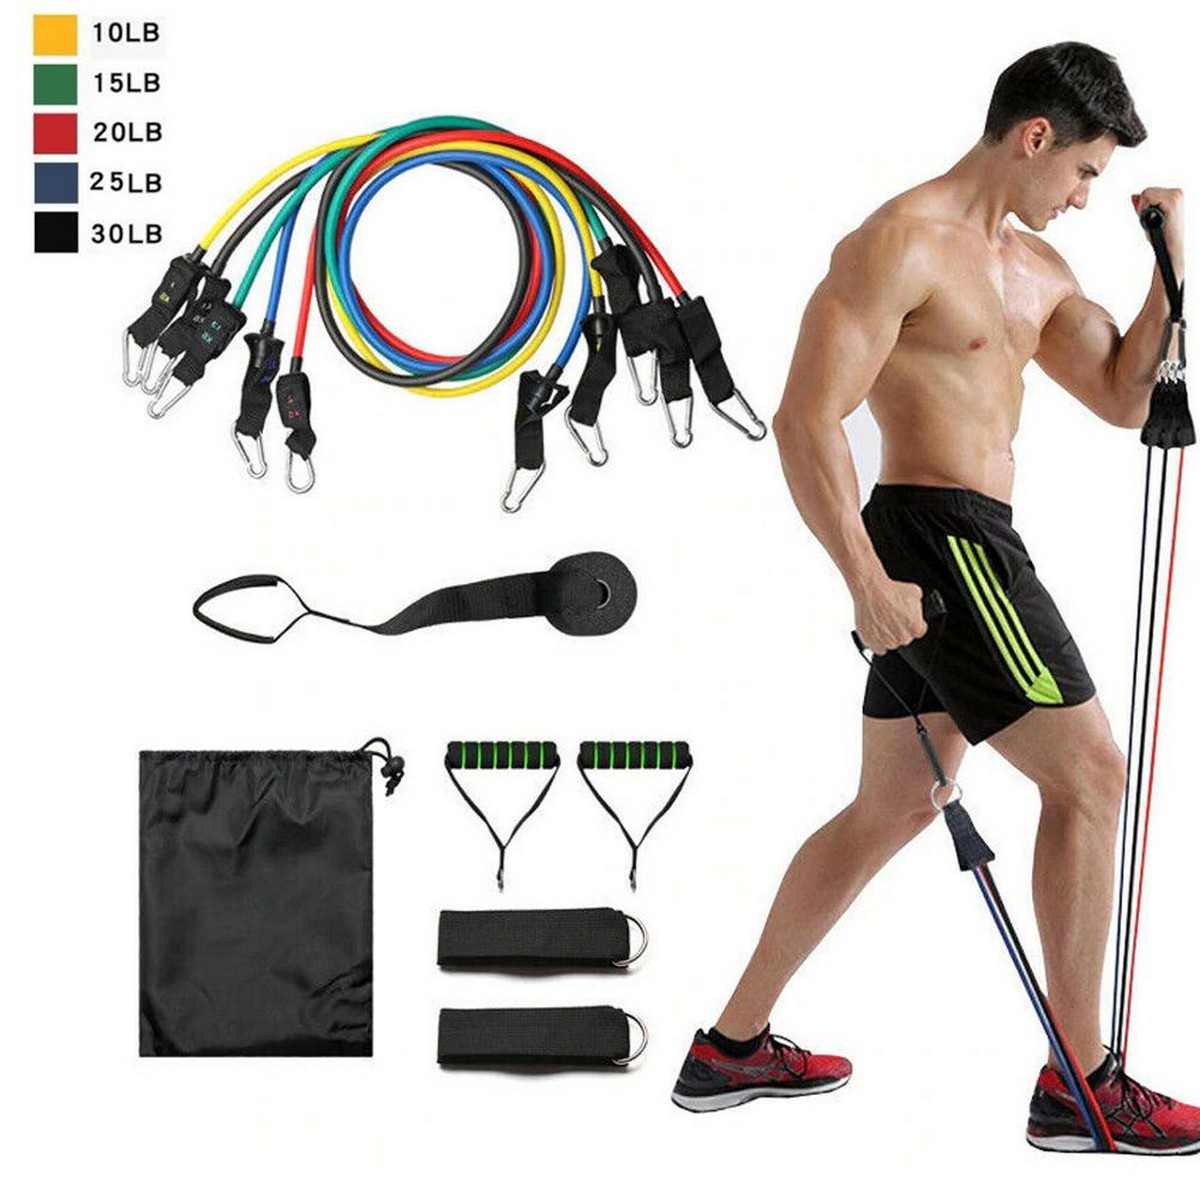 11 PCS Resistance Bands Set Fitness Exercise Set Men Women, Fitness Stretch Workout Bands 11PC with Fitness Tubes, Foam Handles, Ankle Straps, Door Anchor for Home Gym Fitness, Physical Therapy